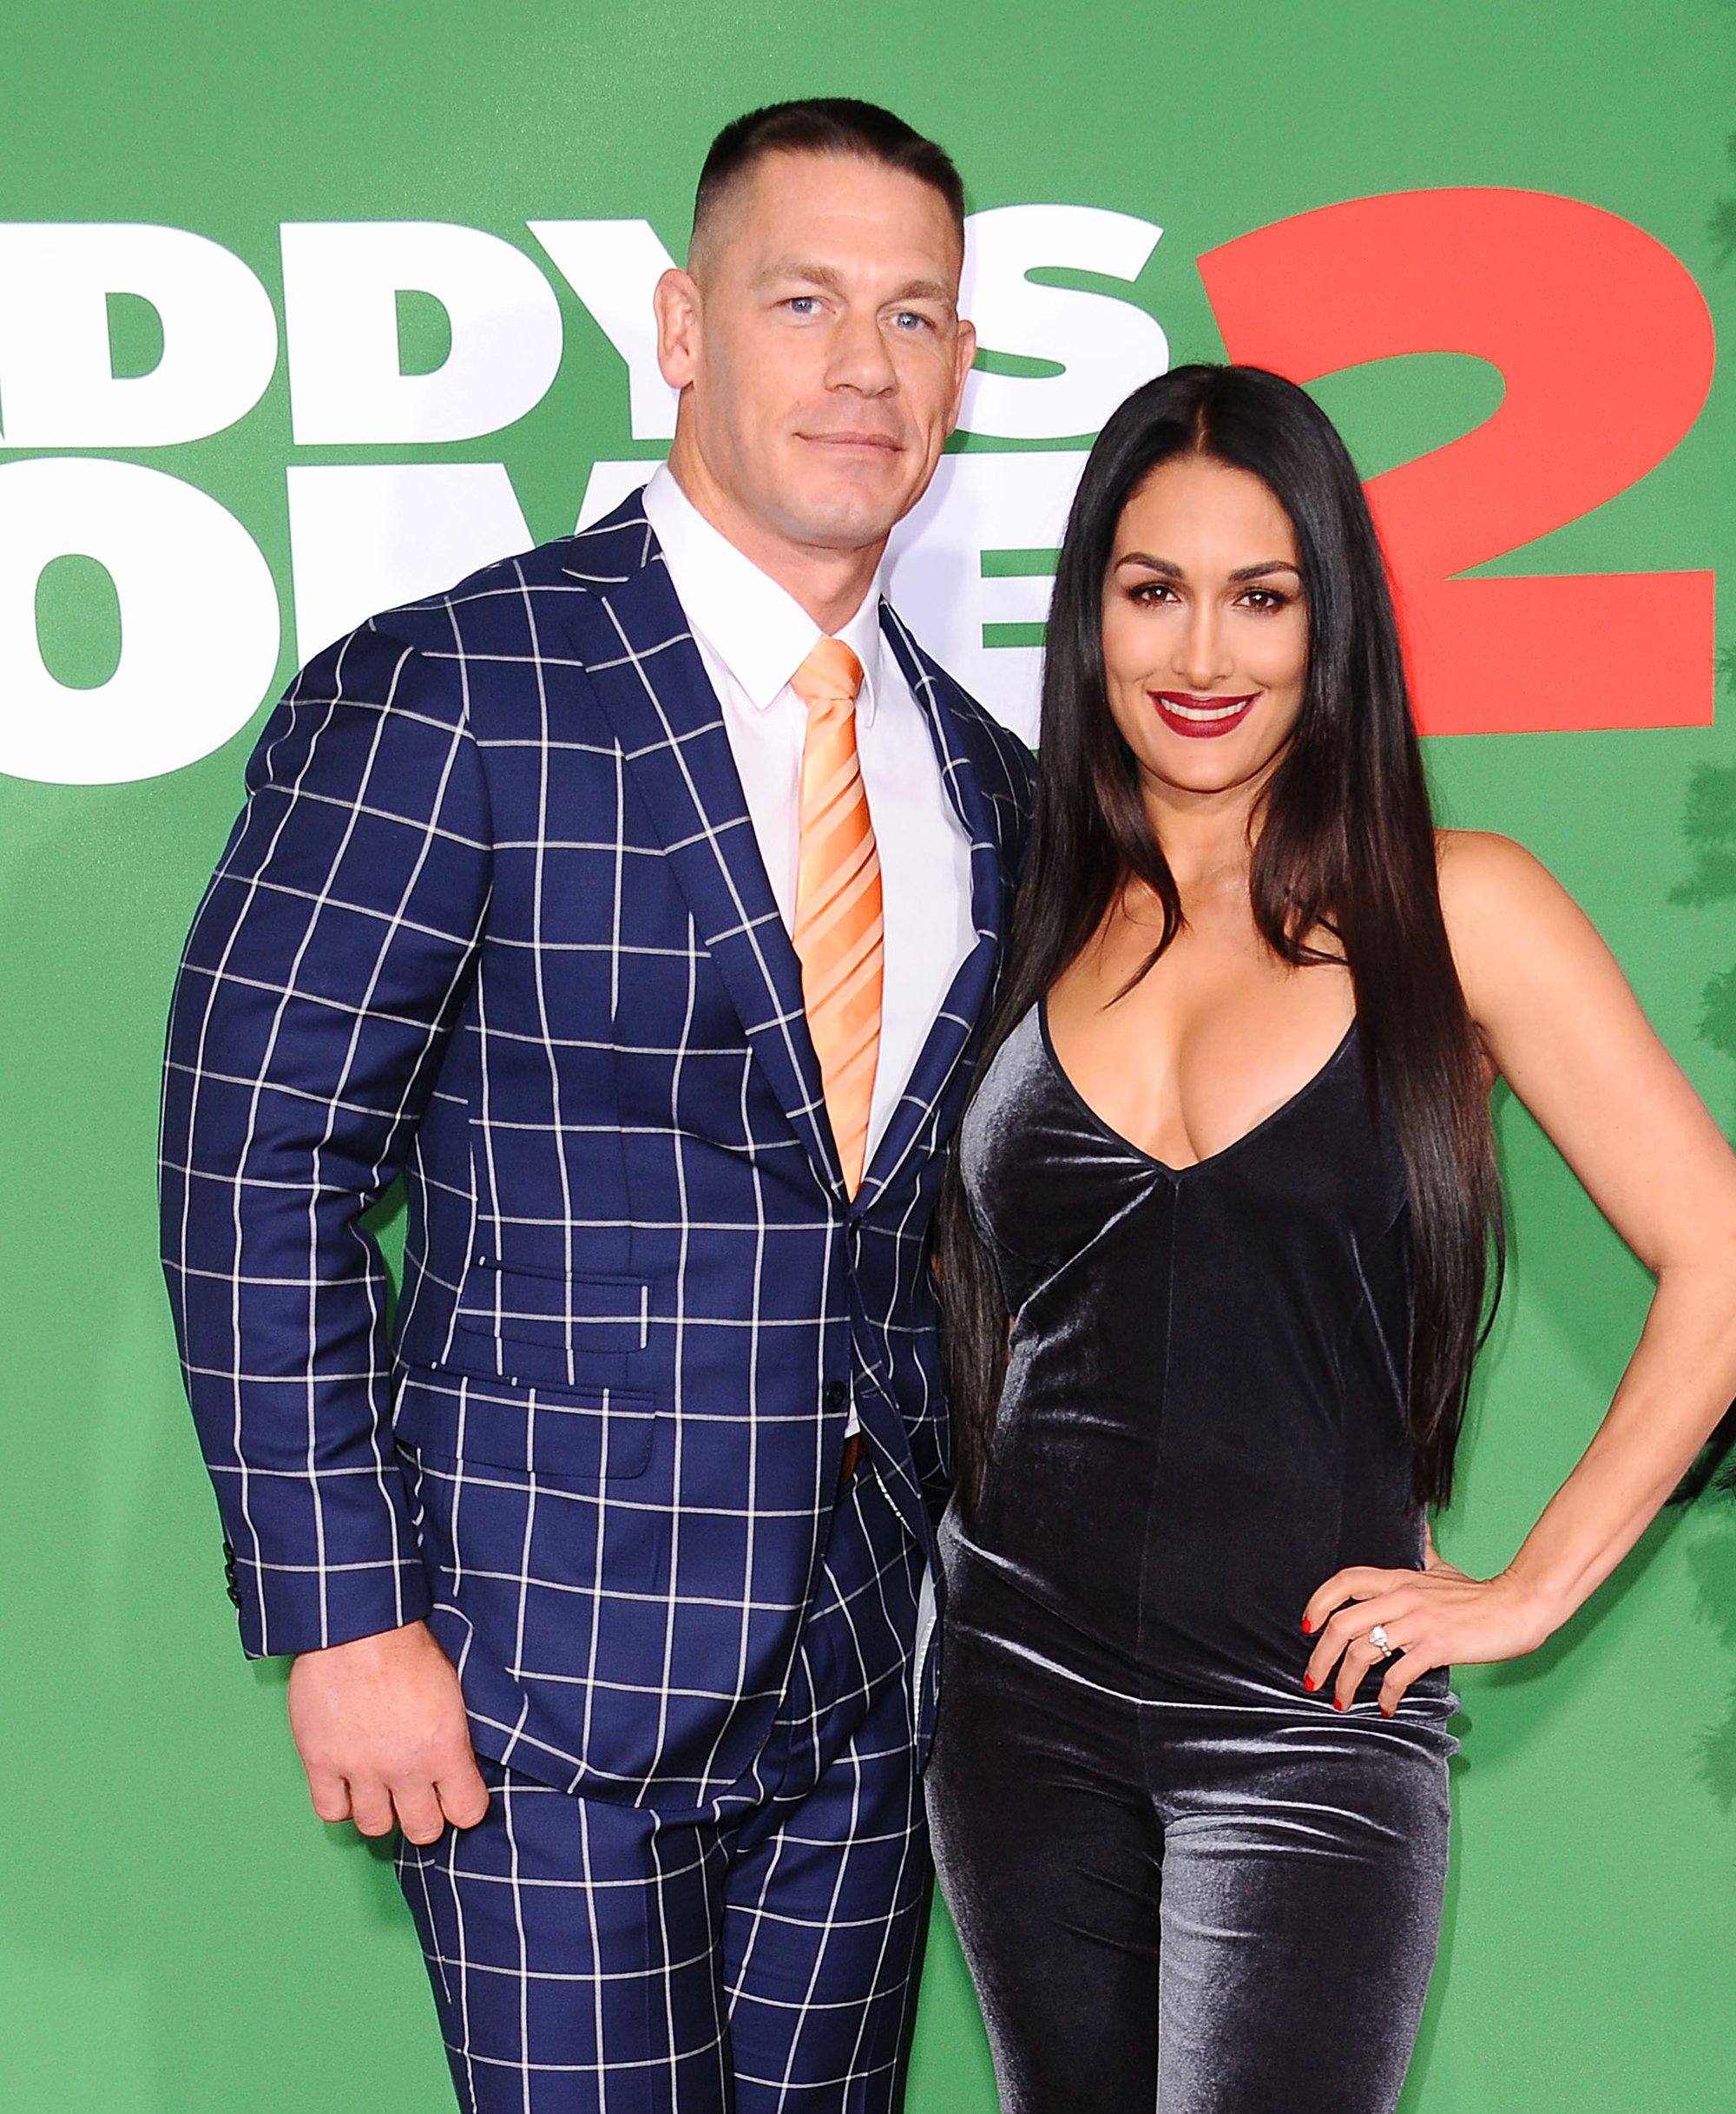 John Cena Being On The Rebound Shouldn't Be Such A Big Deal